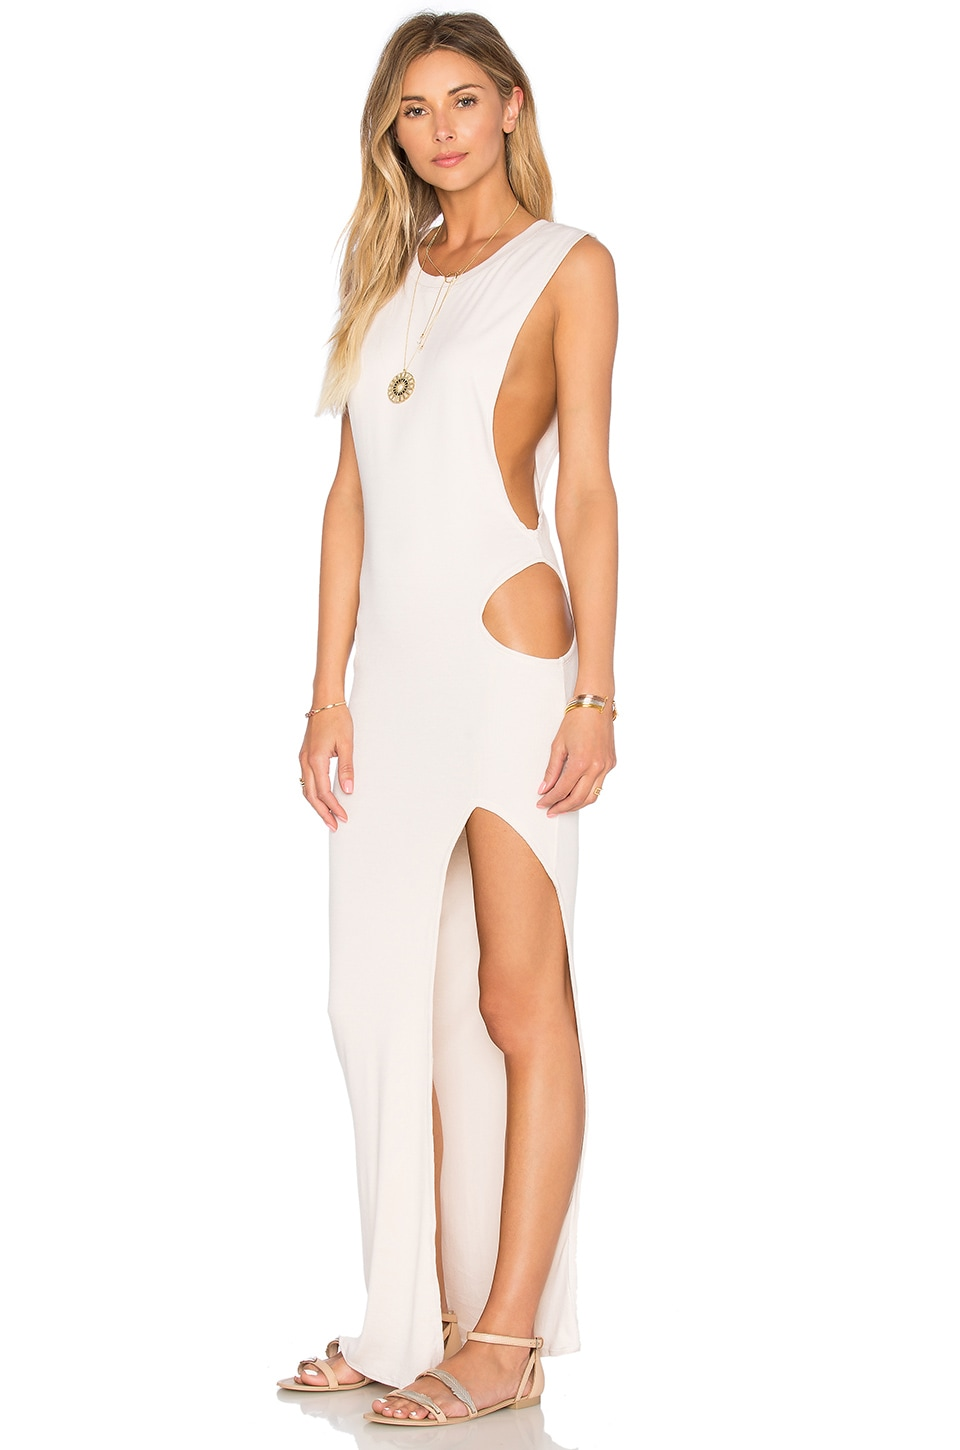 Indah Thea Cutout Maxi Dress in Sand | REVOLVE